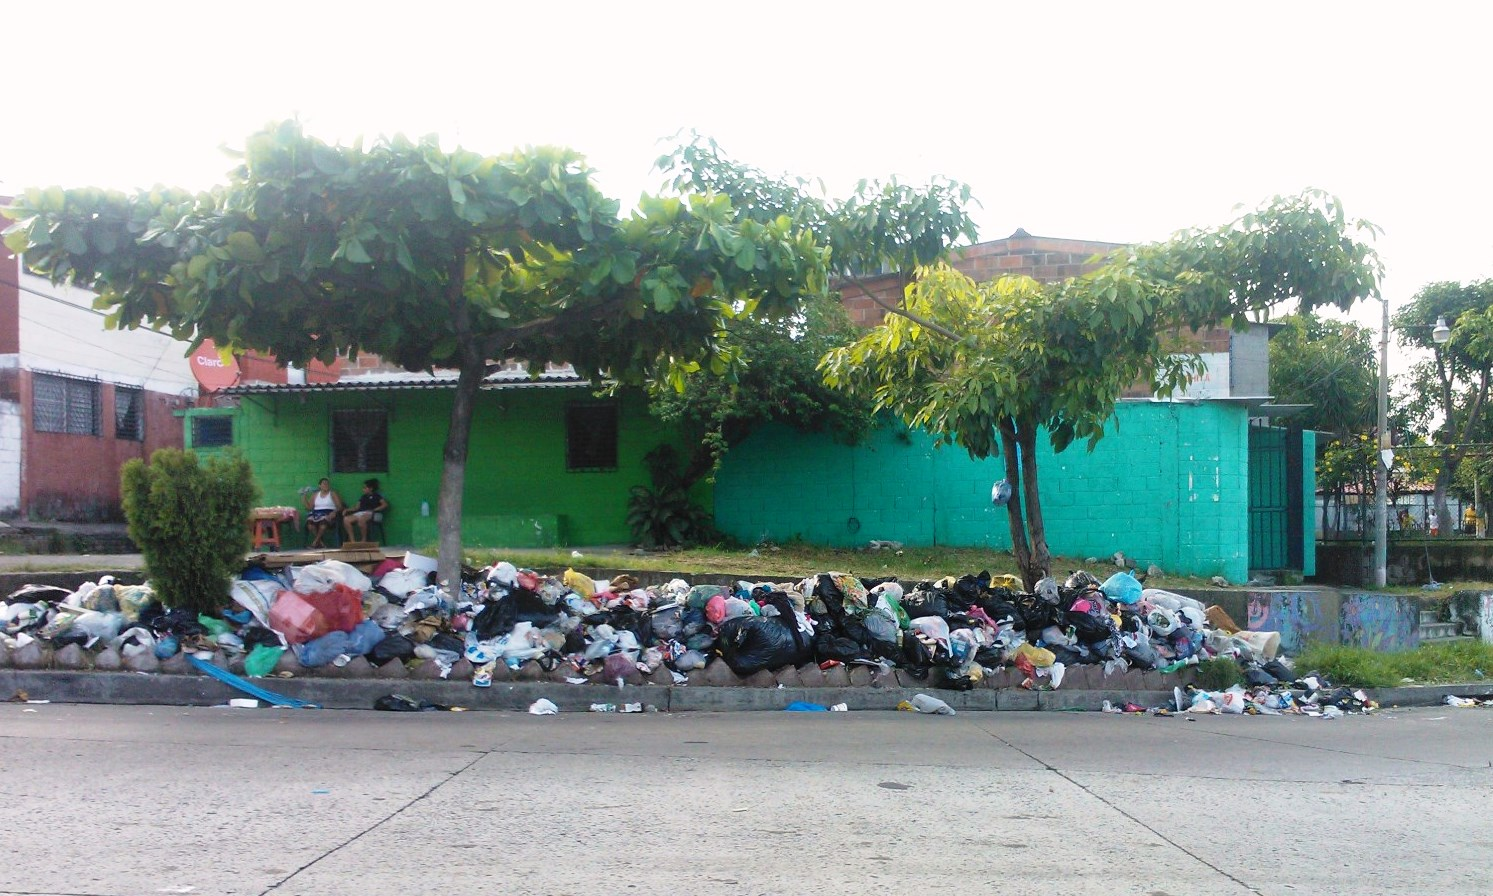 A photograph captured by climate mapper Denisse from El Salvador. View the full report on the Voices of Youth climate change digital map.